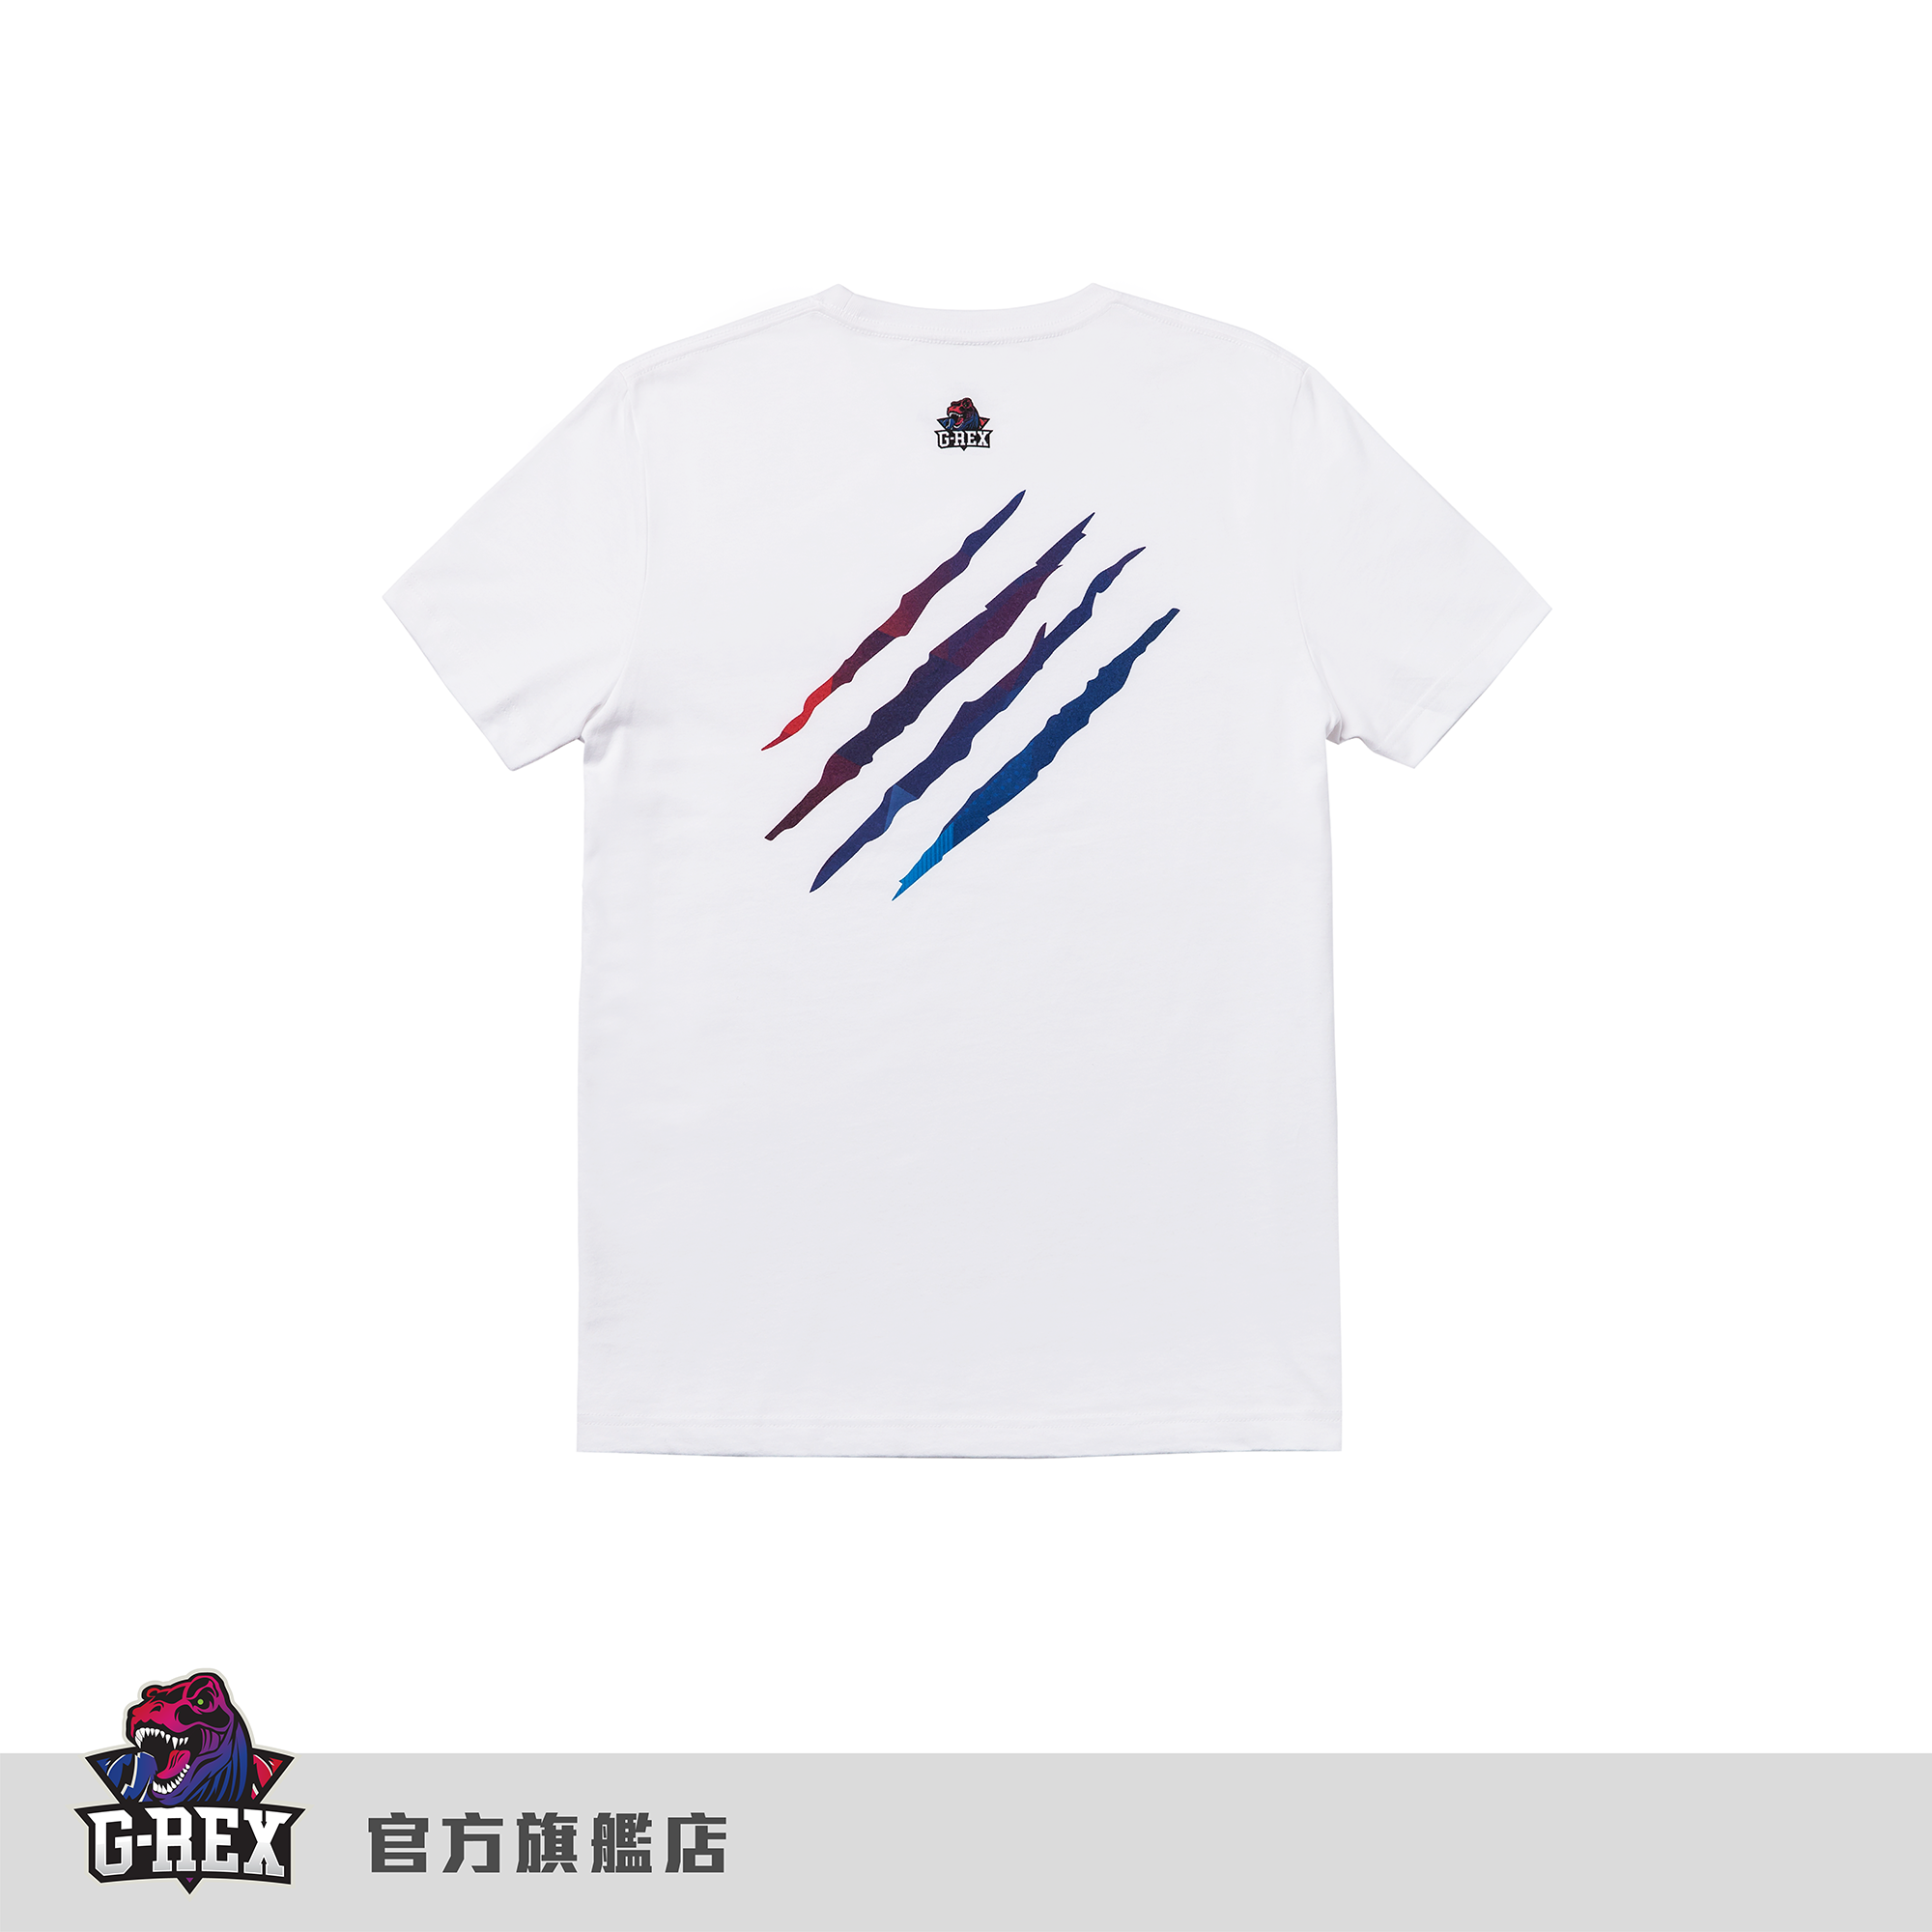 shopee_product_0603-06.png